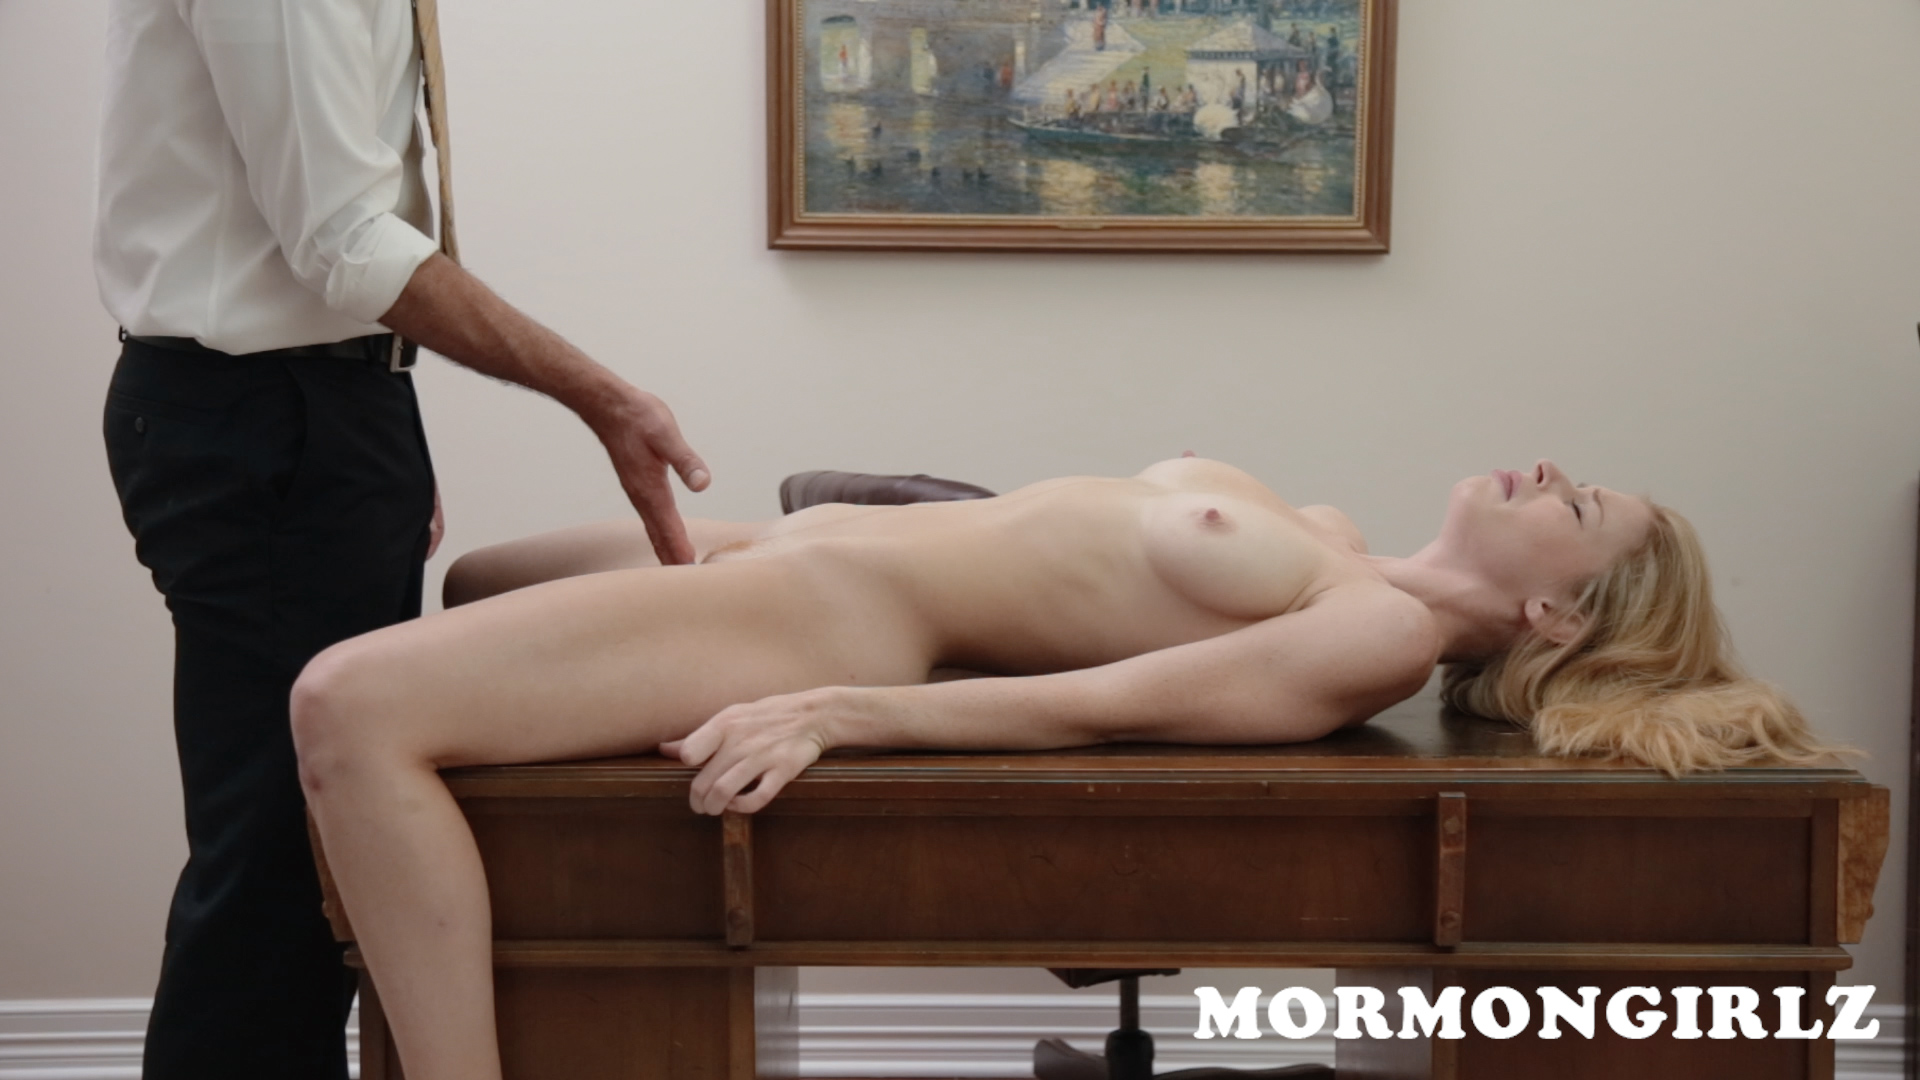 Nude girls in the lds church